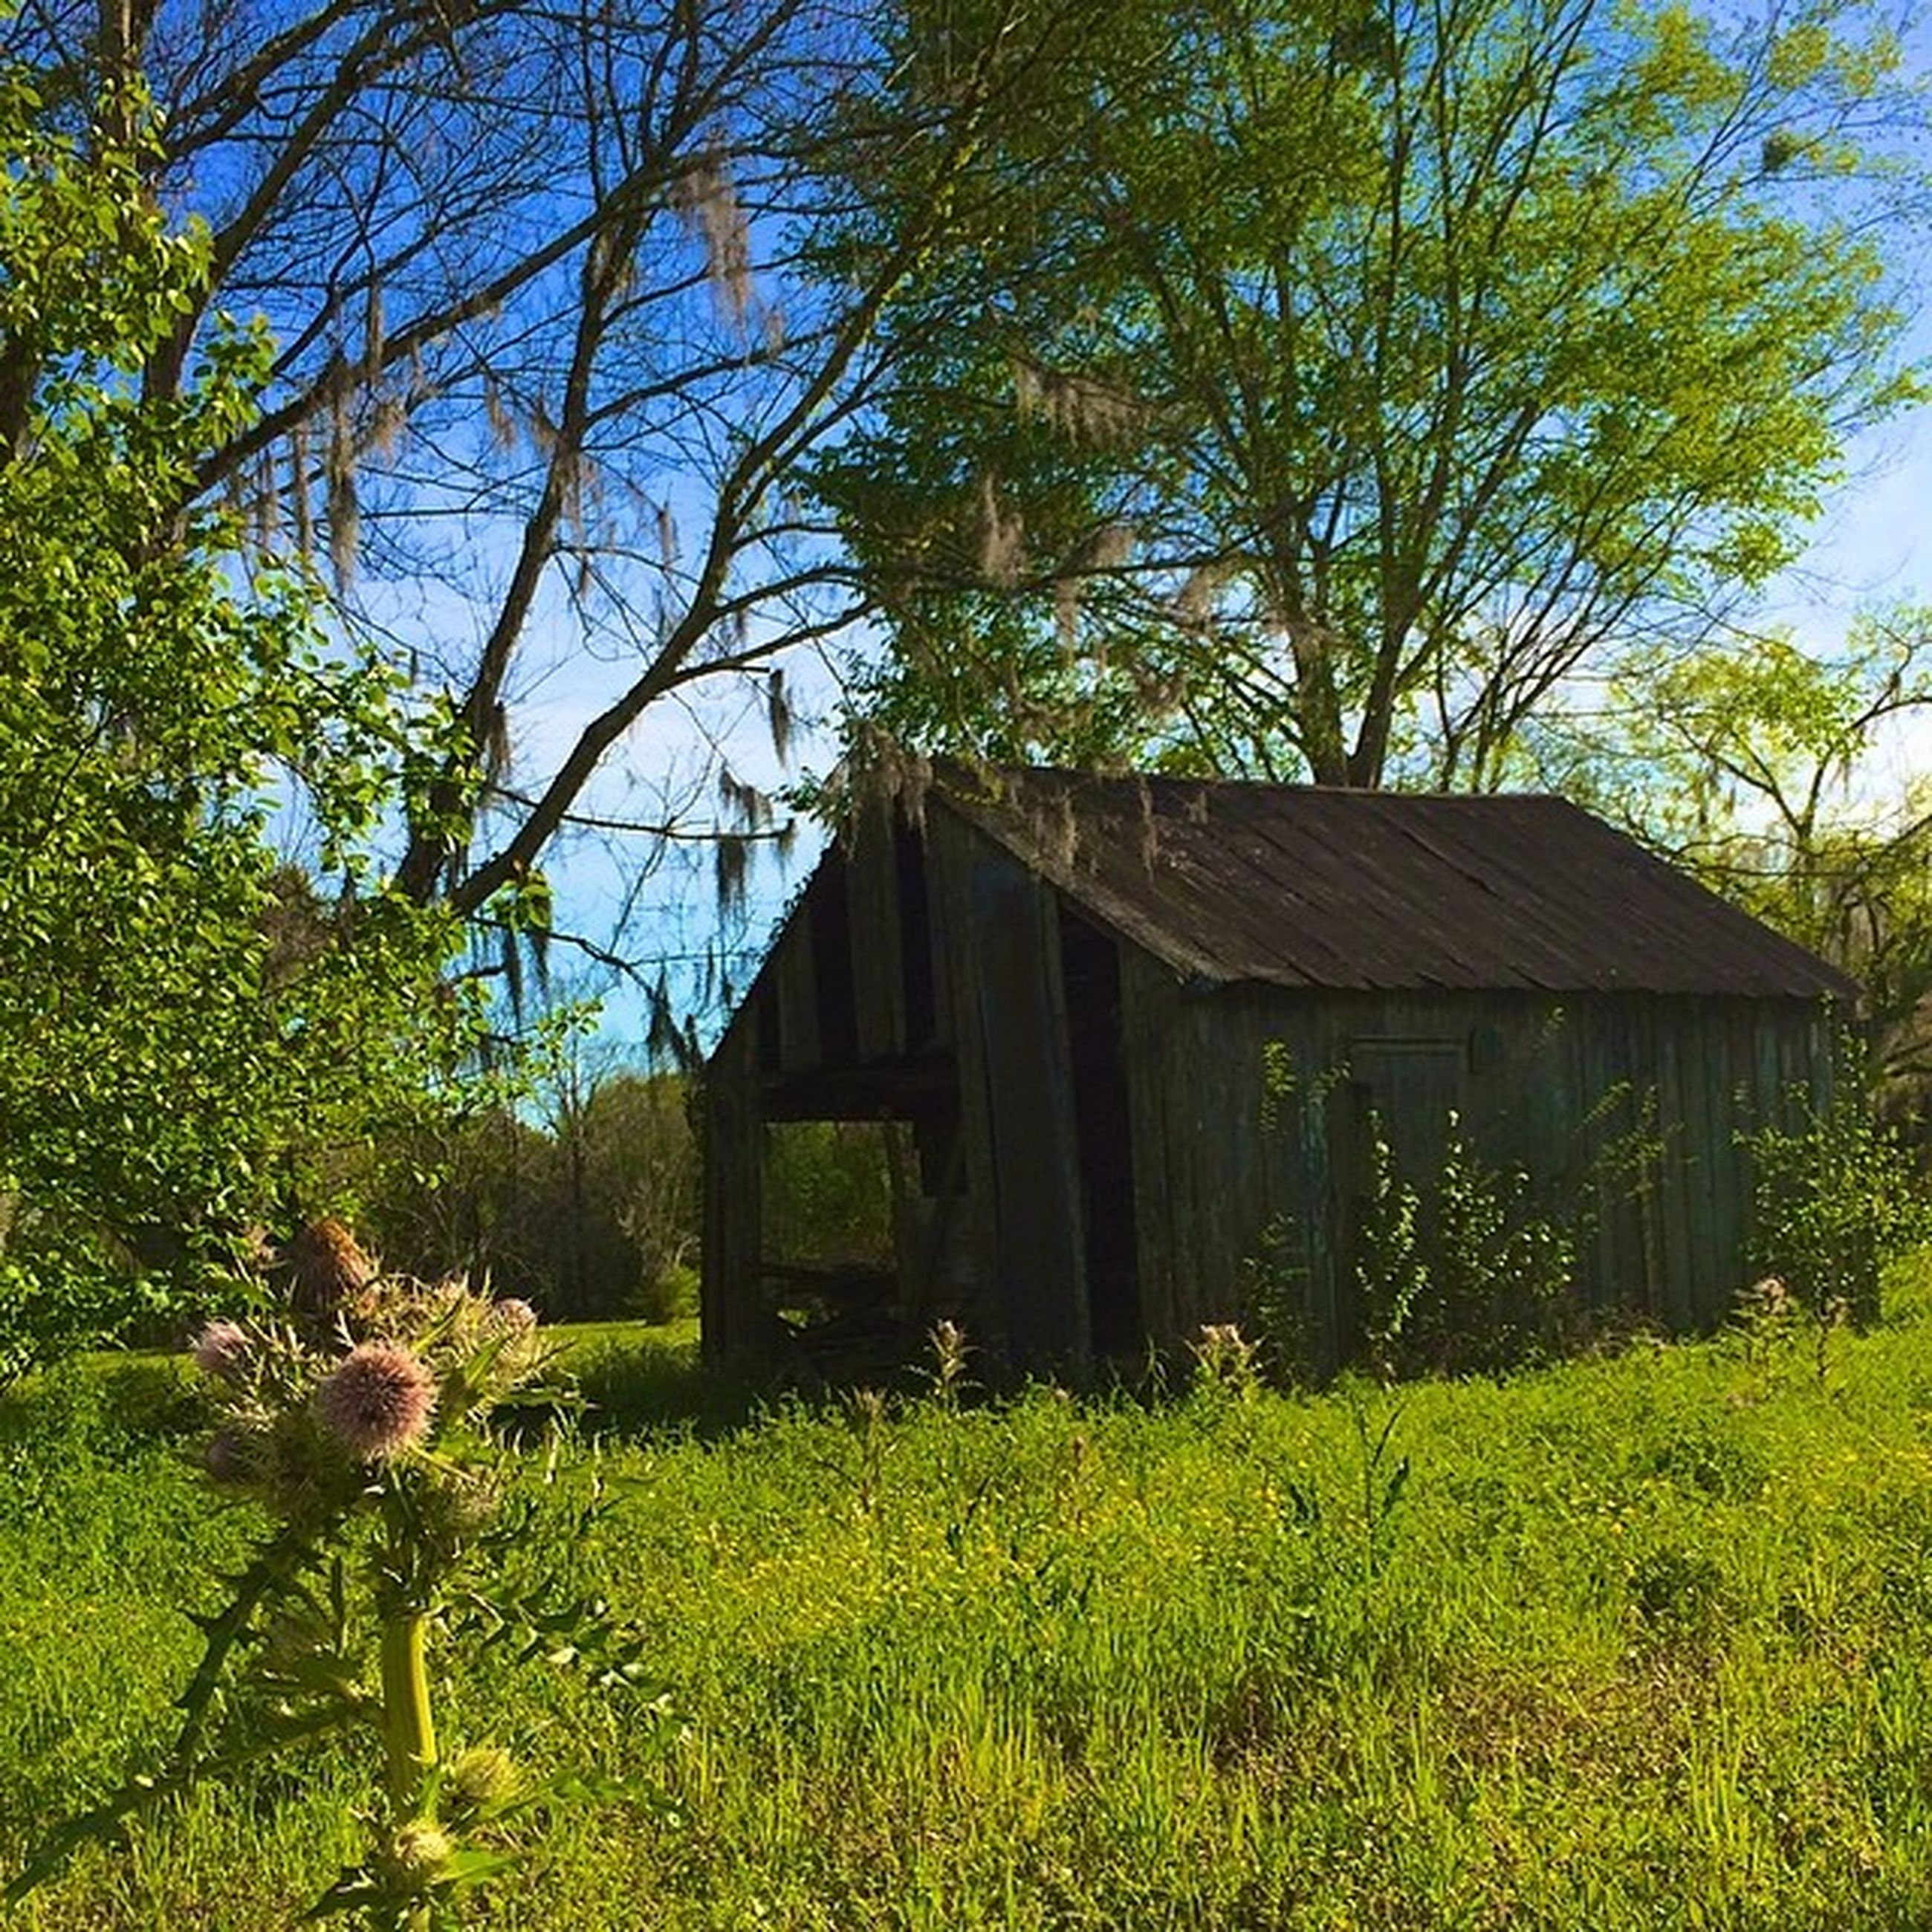 built structure, building exterior, architecture, house, grass, tree, field, growth, plant, residential structure, sky, grassy, green color, nature, barn, day, rural scene, tranquility, wood - material, cottage